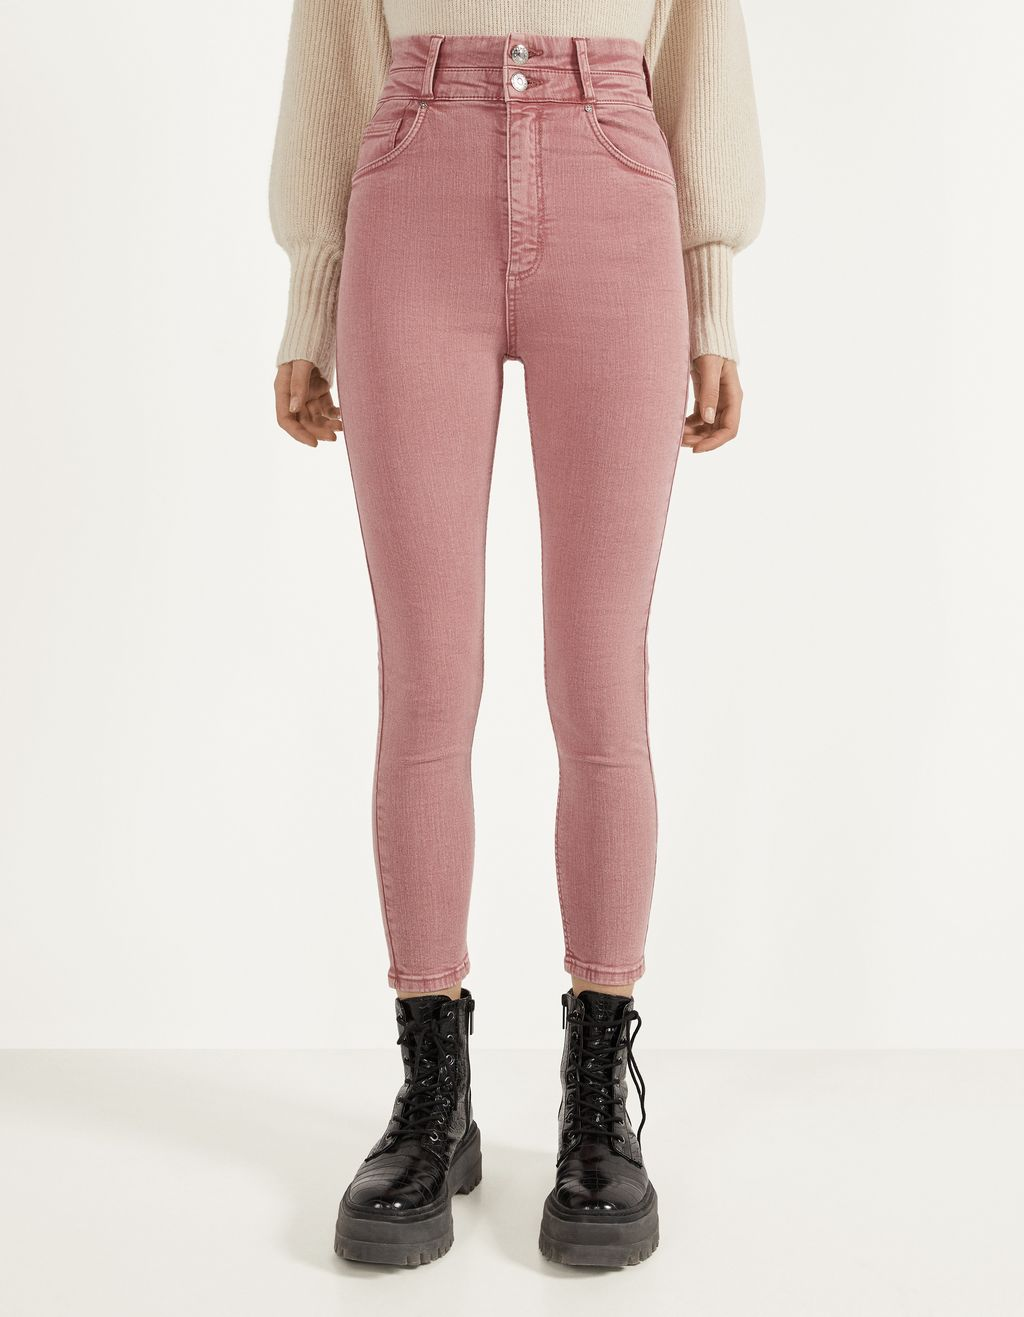 Double-waist Skinny Fit jeans